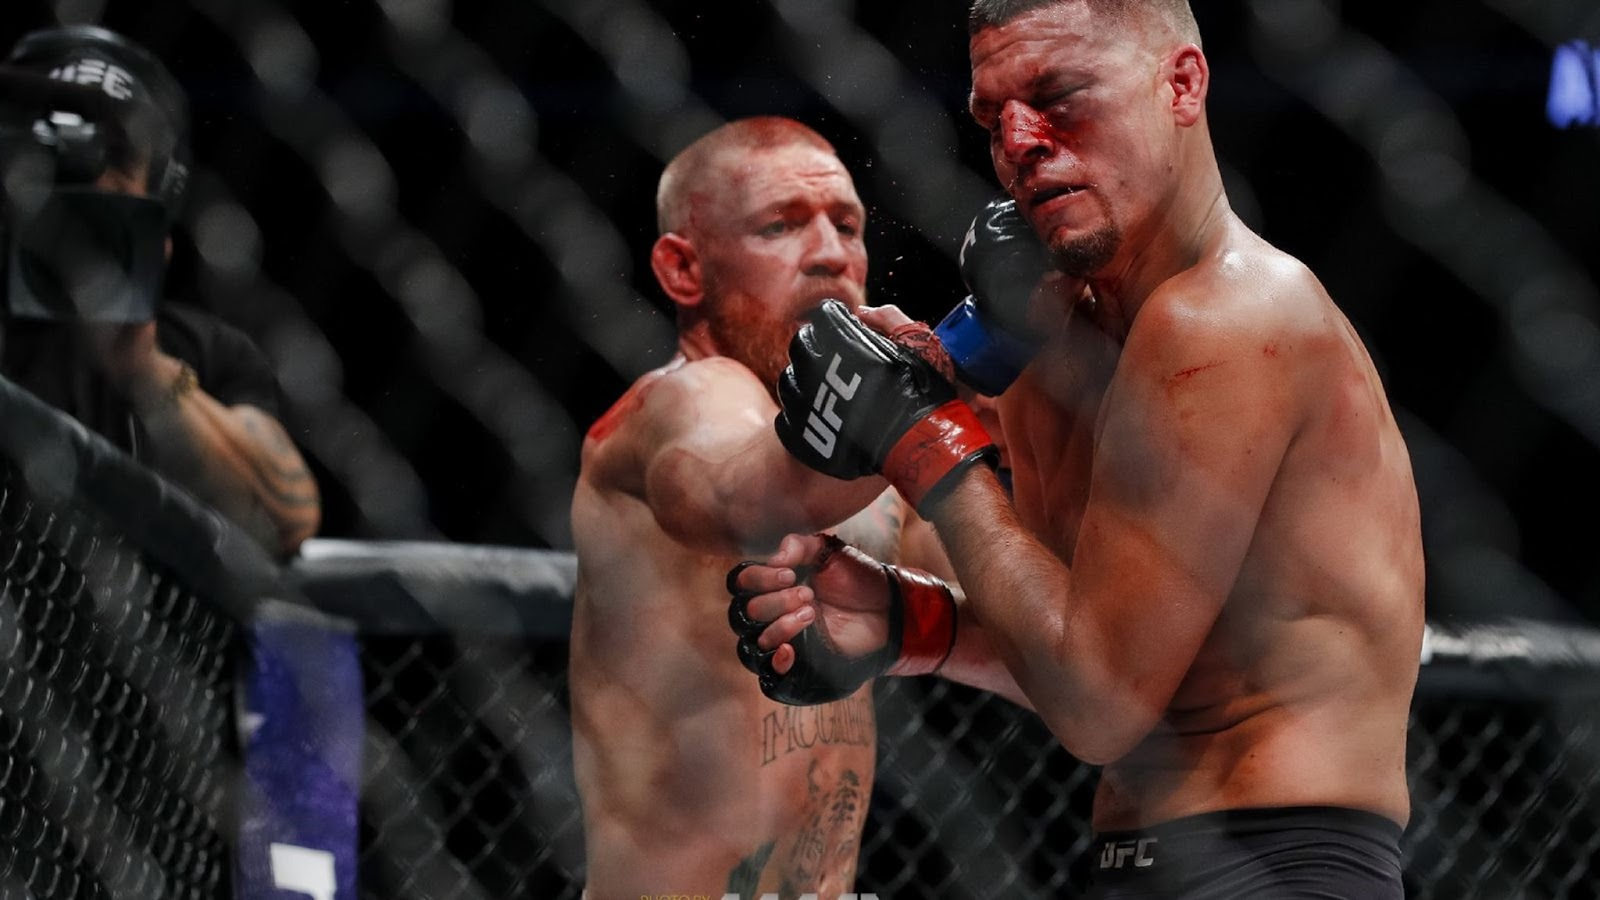 CONOR MCGREGOR VS. NATE DIAZ 2